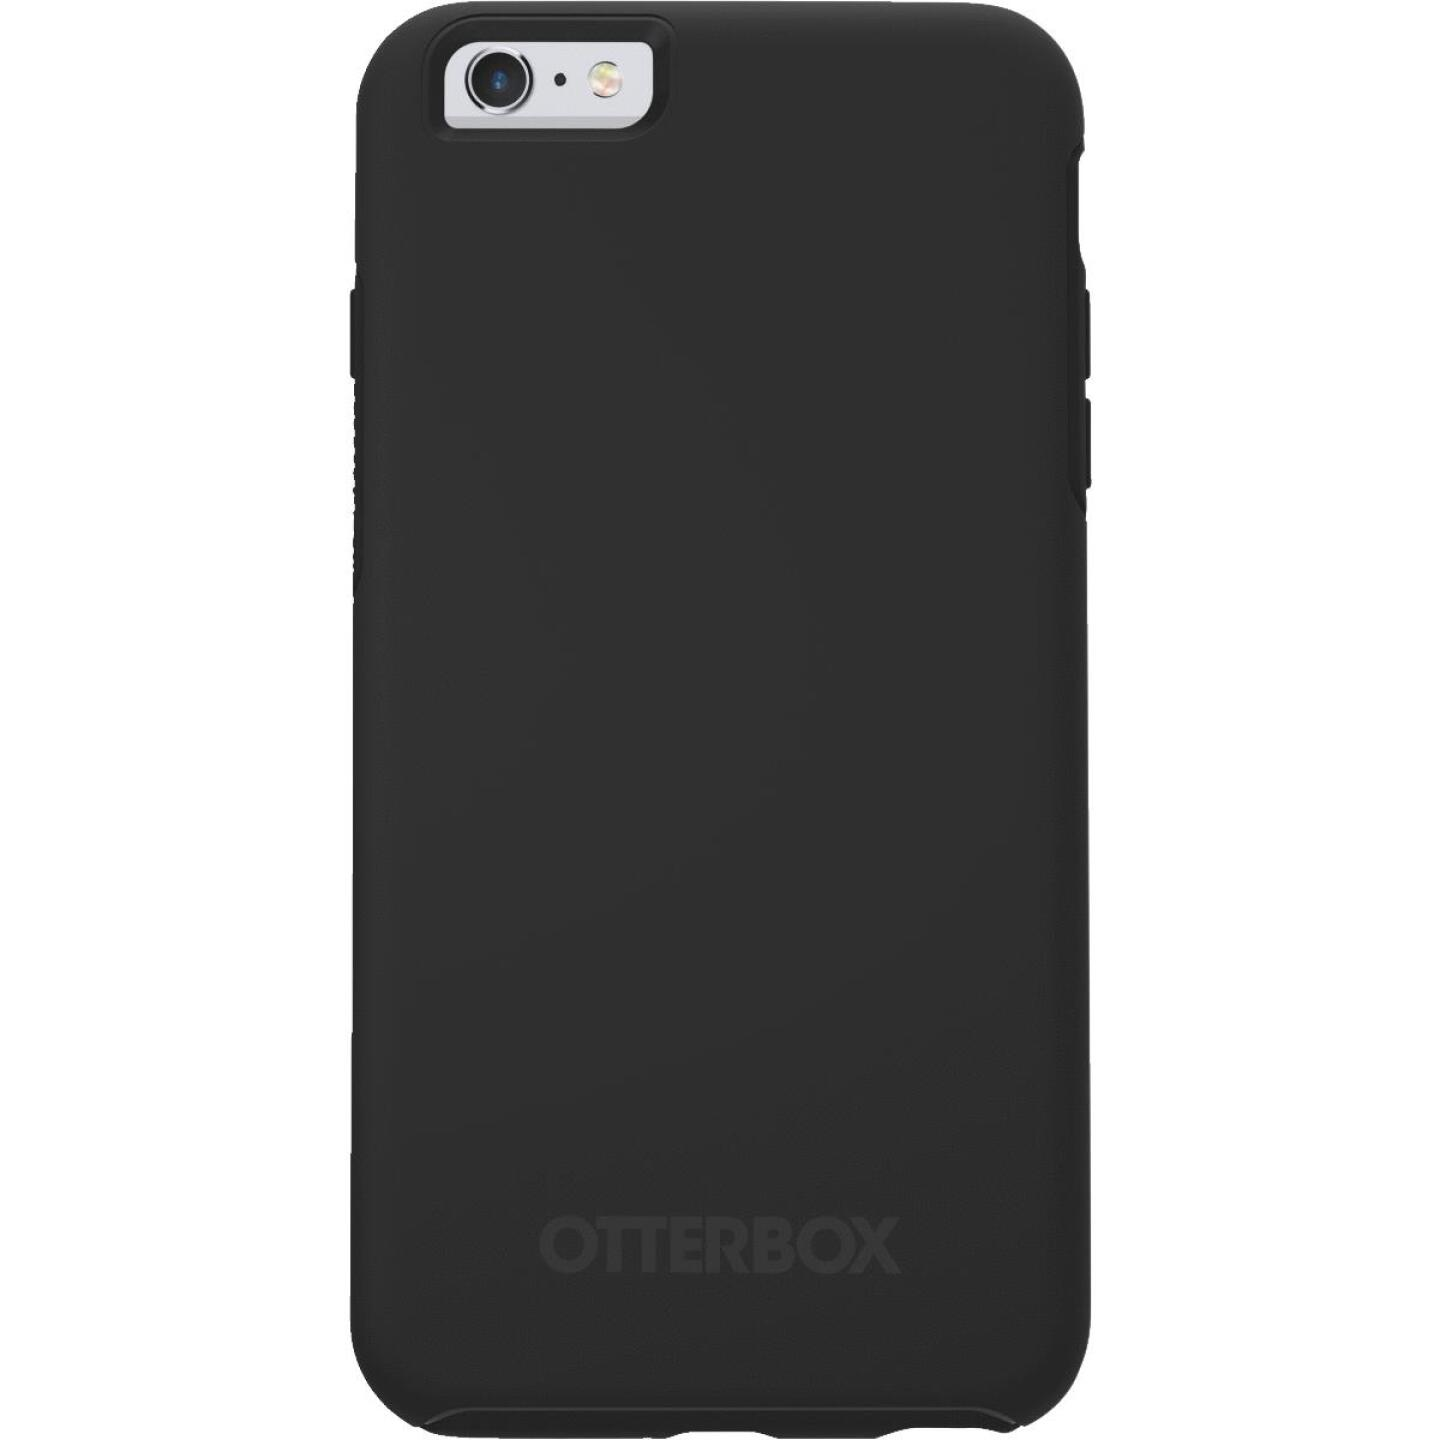 Otterbox Symmetry Series iPhone 6/6s Black Cell Phone Case Image 2